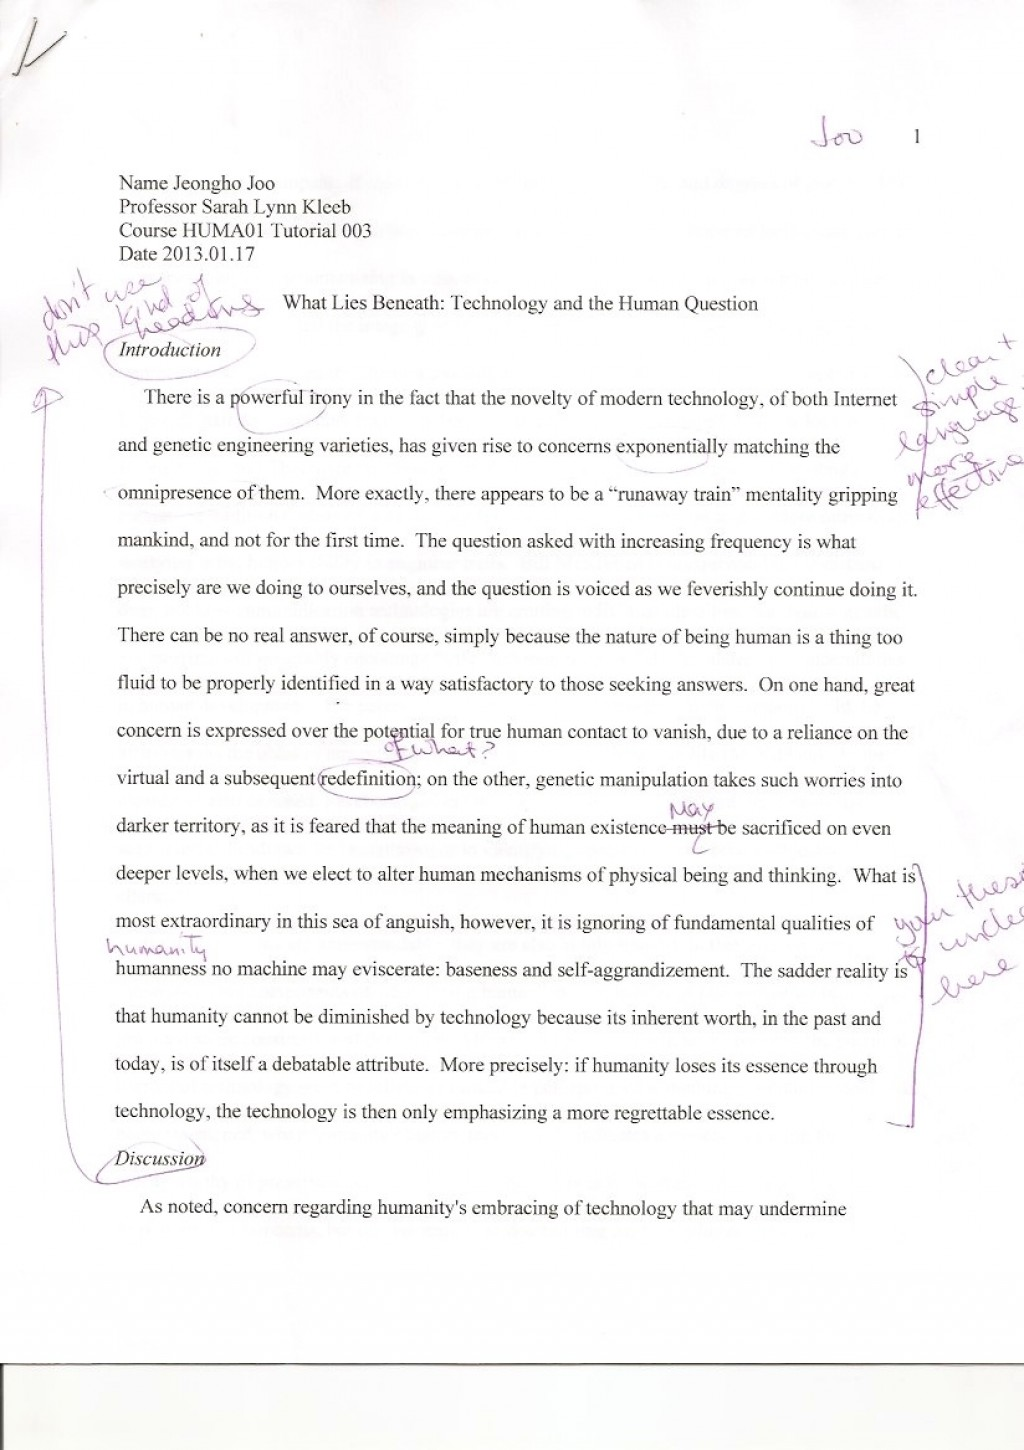 002 Essay Example What Does It Mean To Human Phenomenal Be Pdf Religion Anthropology Large